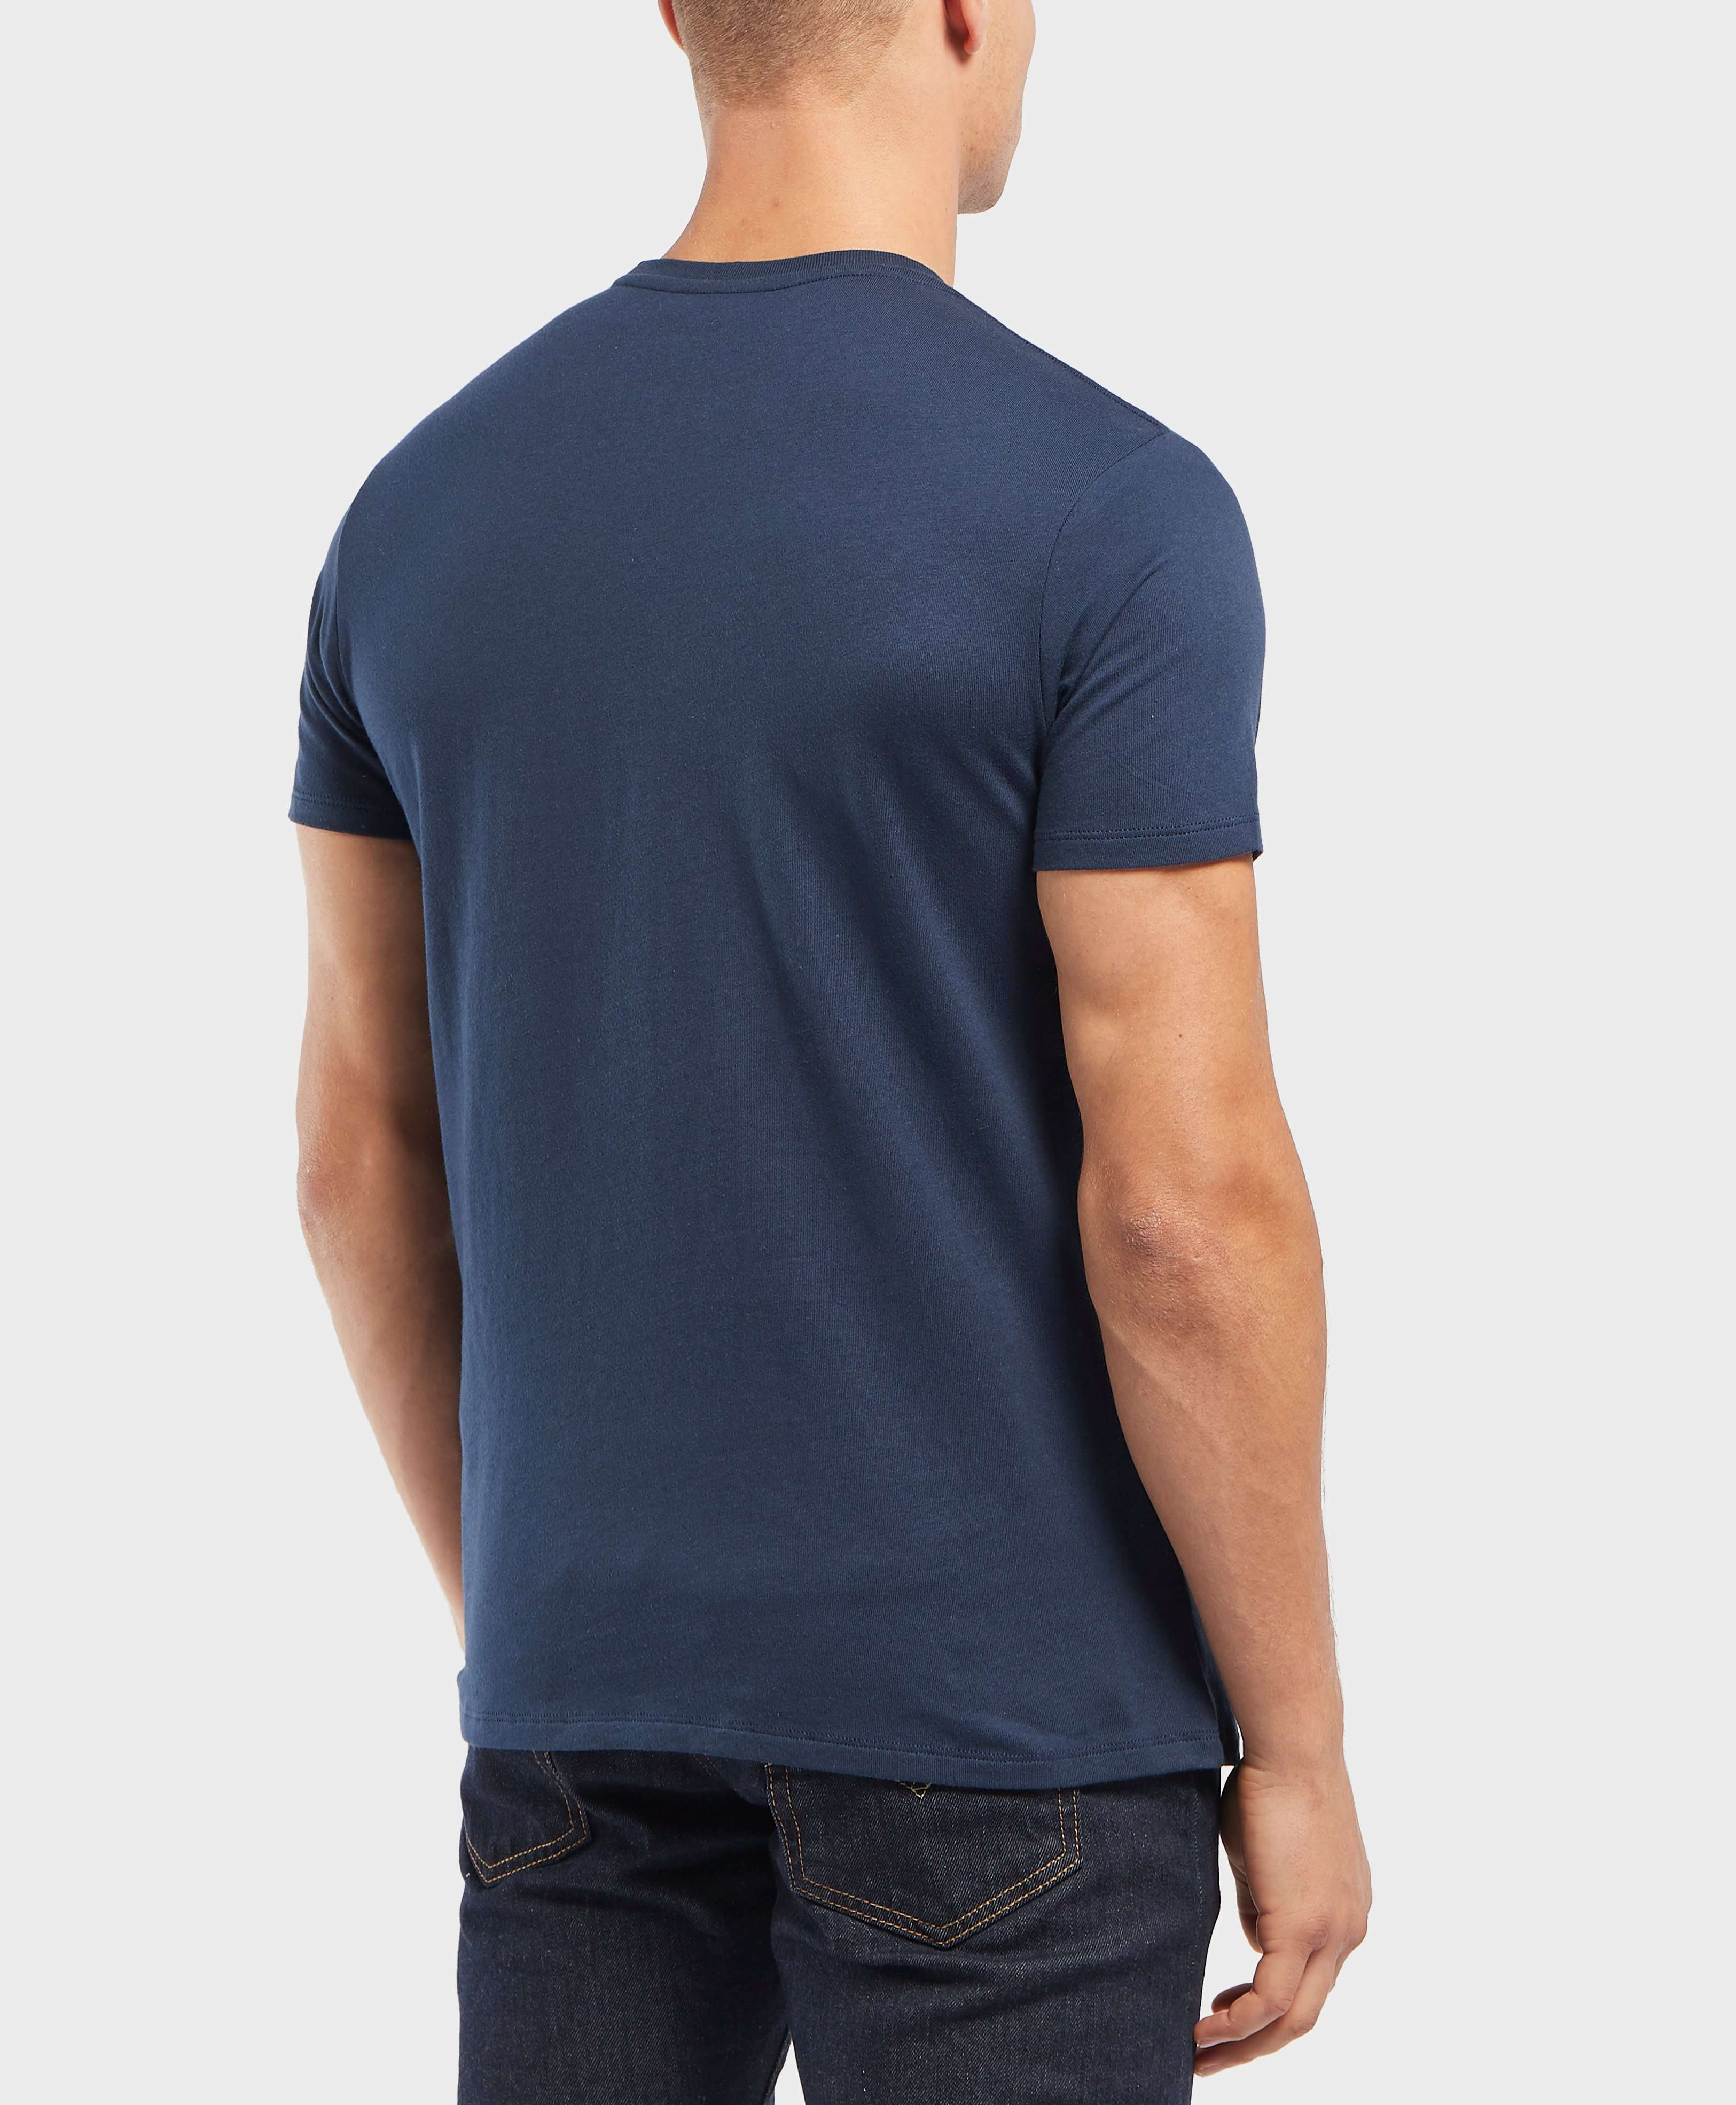 Levis Sports Graphic Short Sleeve T-Shirt